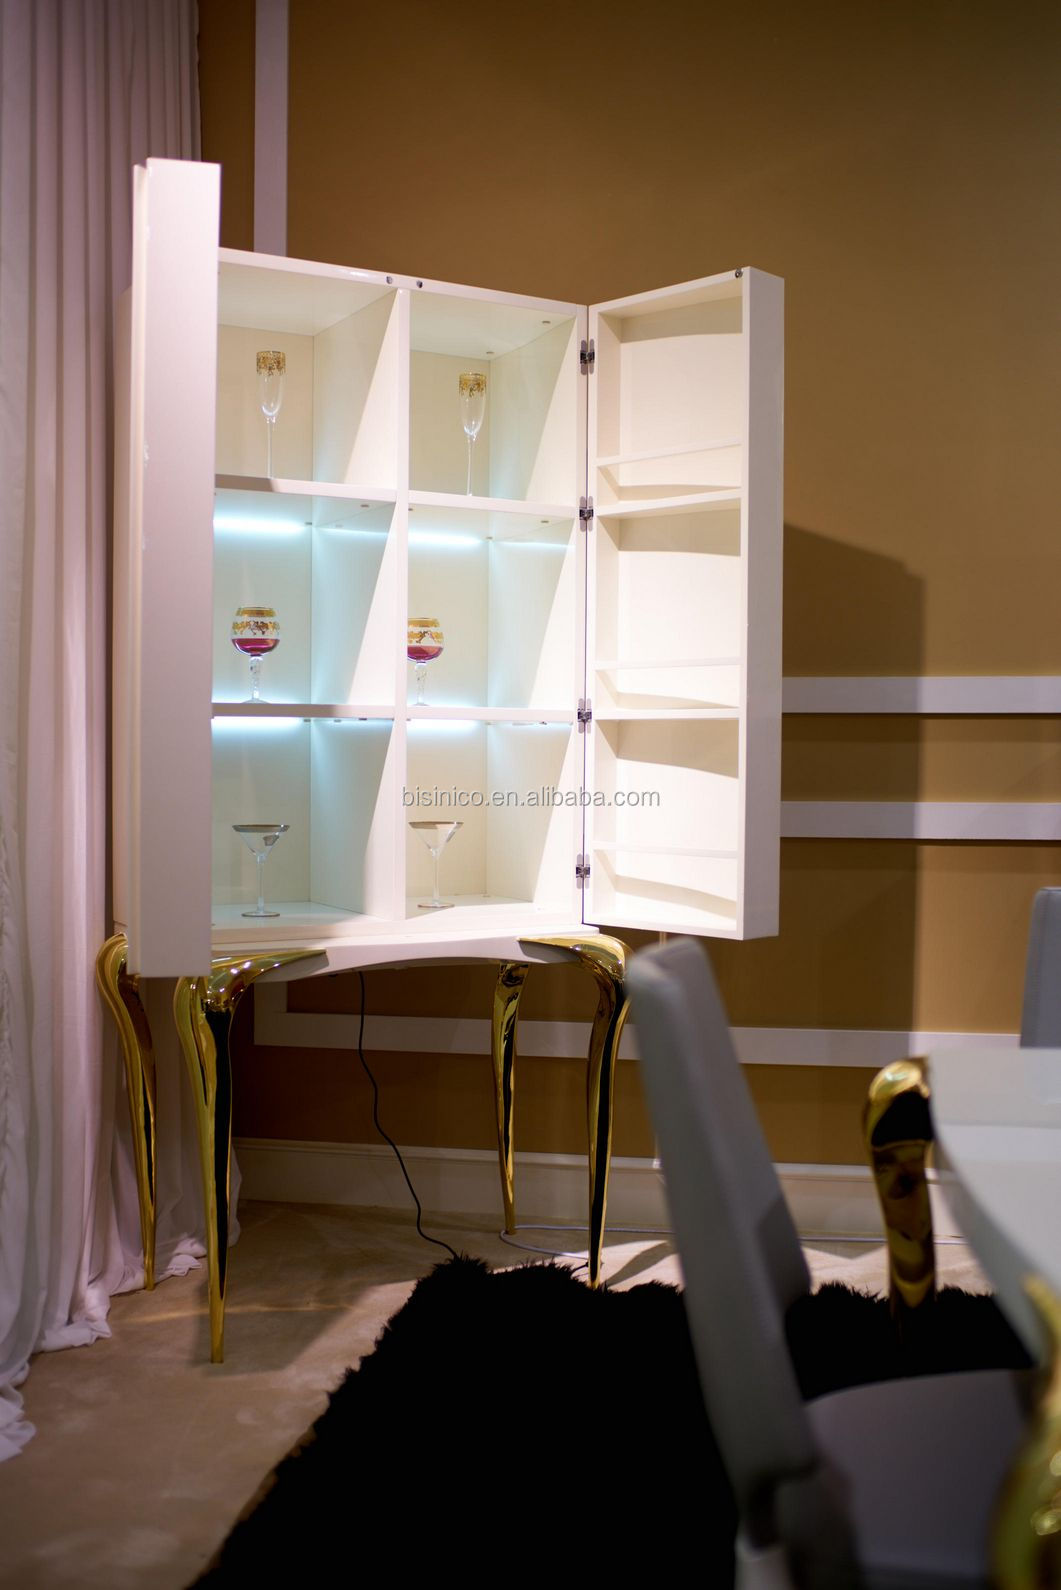 New Arrival Sleek and Luxurious Dining Room Two Doors Display Cabinet, White Cocktail Showcase With Four Golden Legs